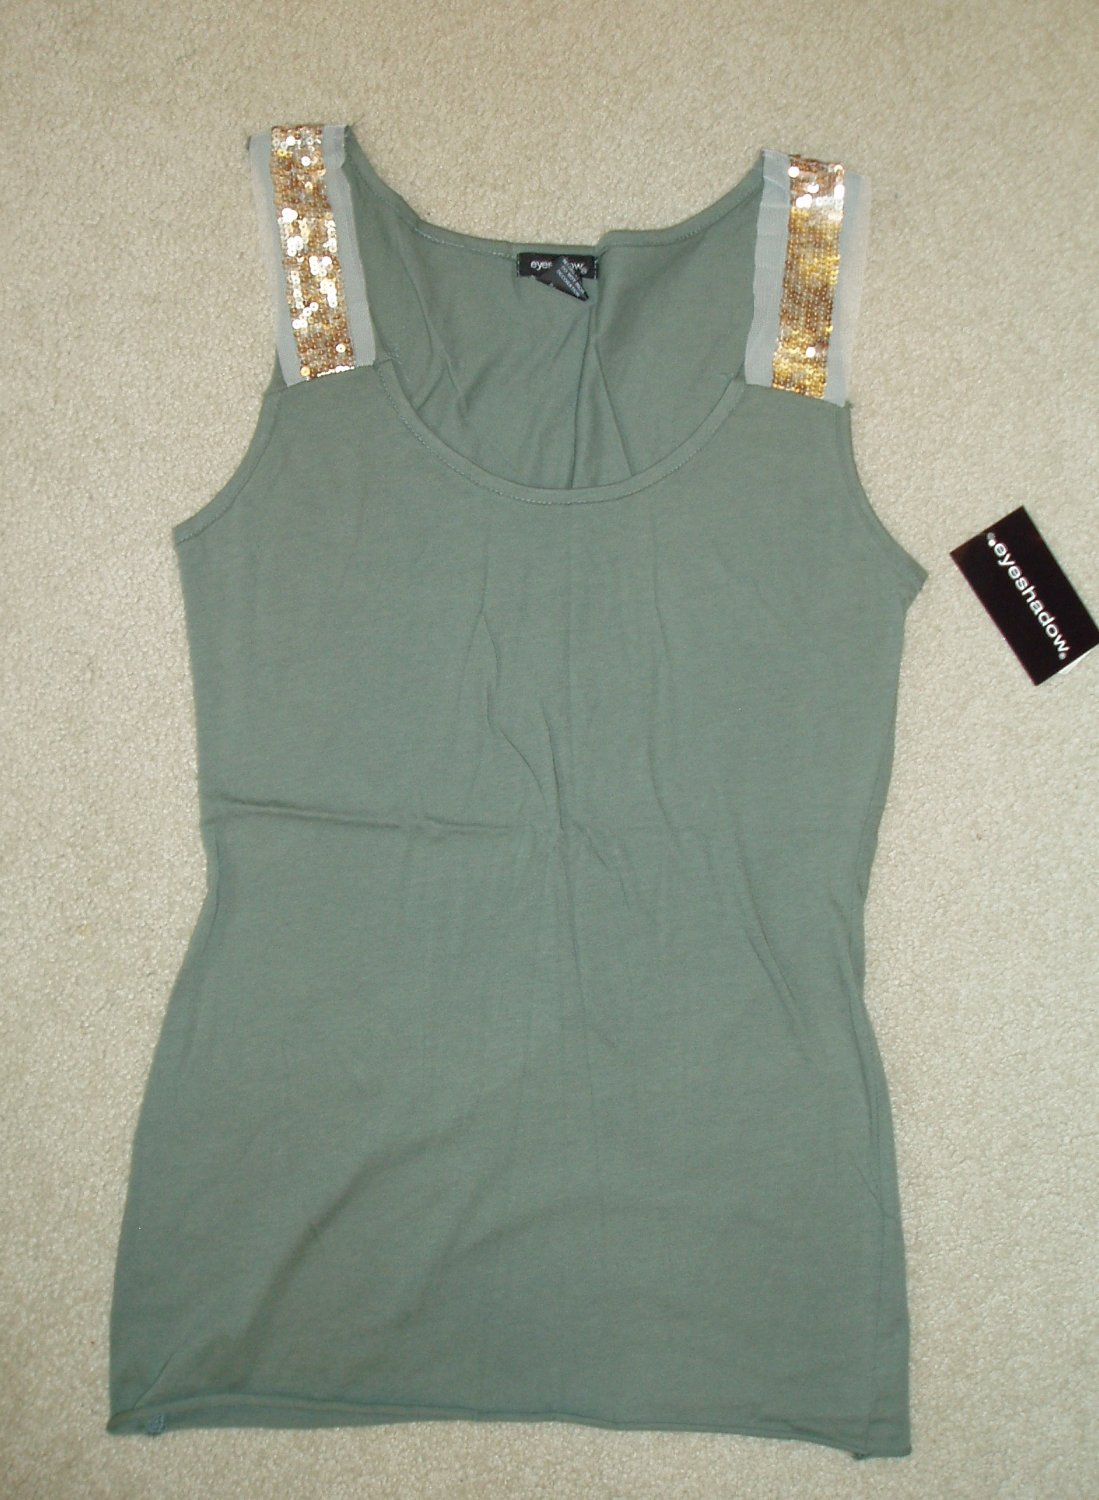 Junior, women's green tank top, size Large, L